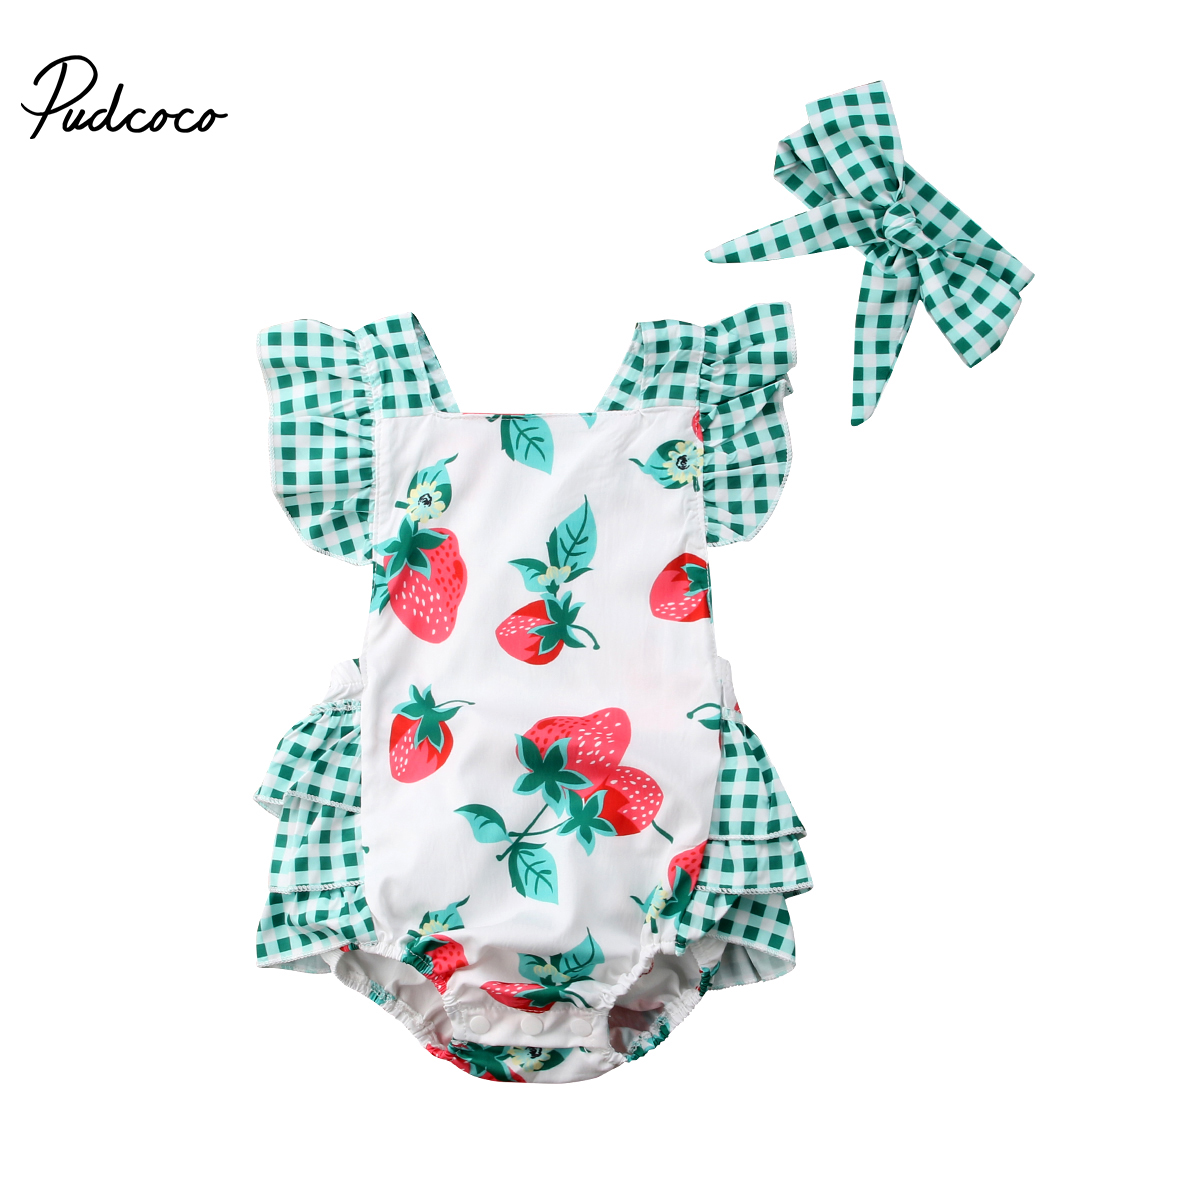 0-24M Baby Girl Clothes Summer Rompers Newborn Baby Girl Print Romper Jumpsuit Infant Headband Clothes Outfits Set 3pcs set cute newborn baby girl clothes 2017 worth the wait baby bodysuit romper ruffles tutu skirted shorts headband outfits